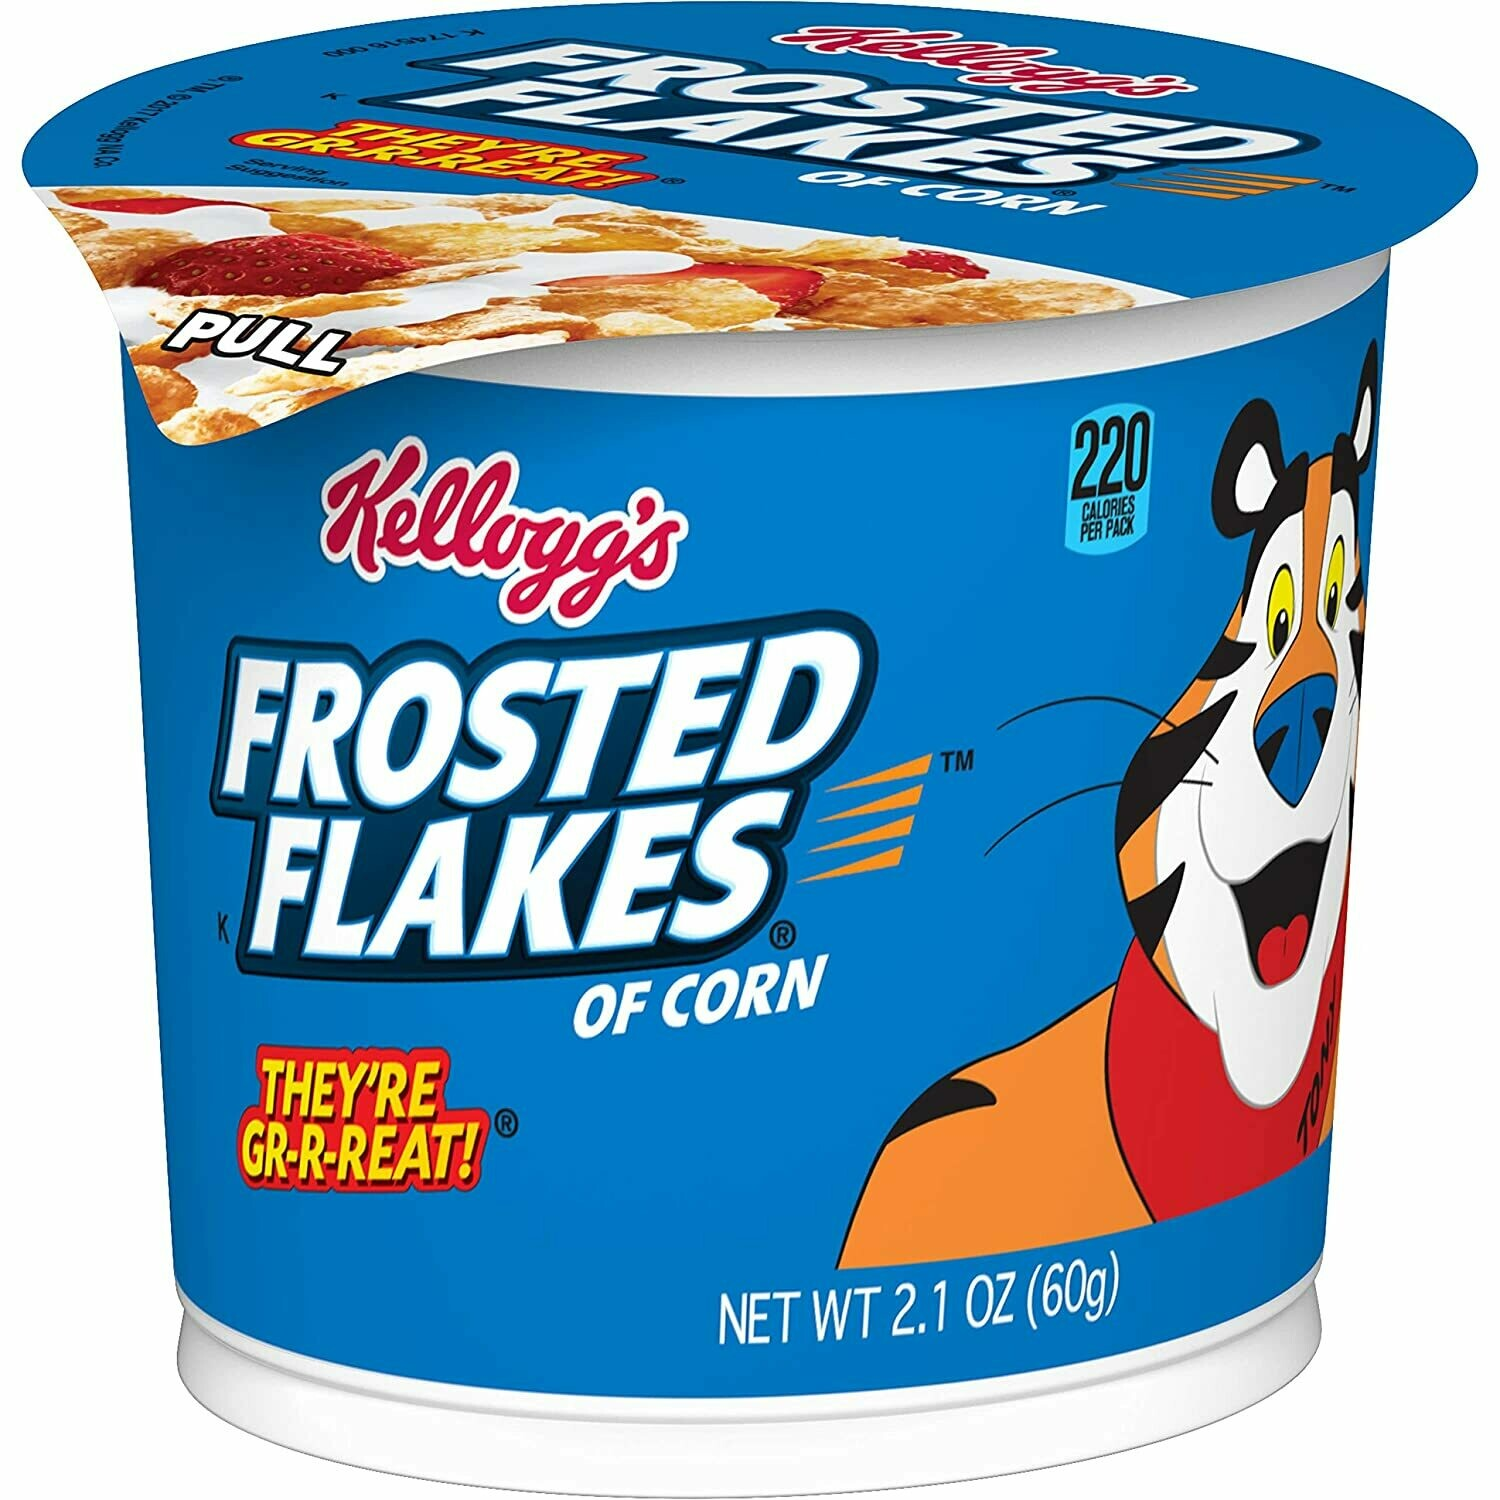 * Kellogg's Frosted Flakes Cereal Cup 6-2.1 Ounces